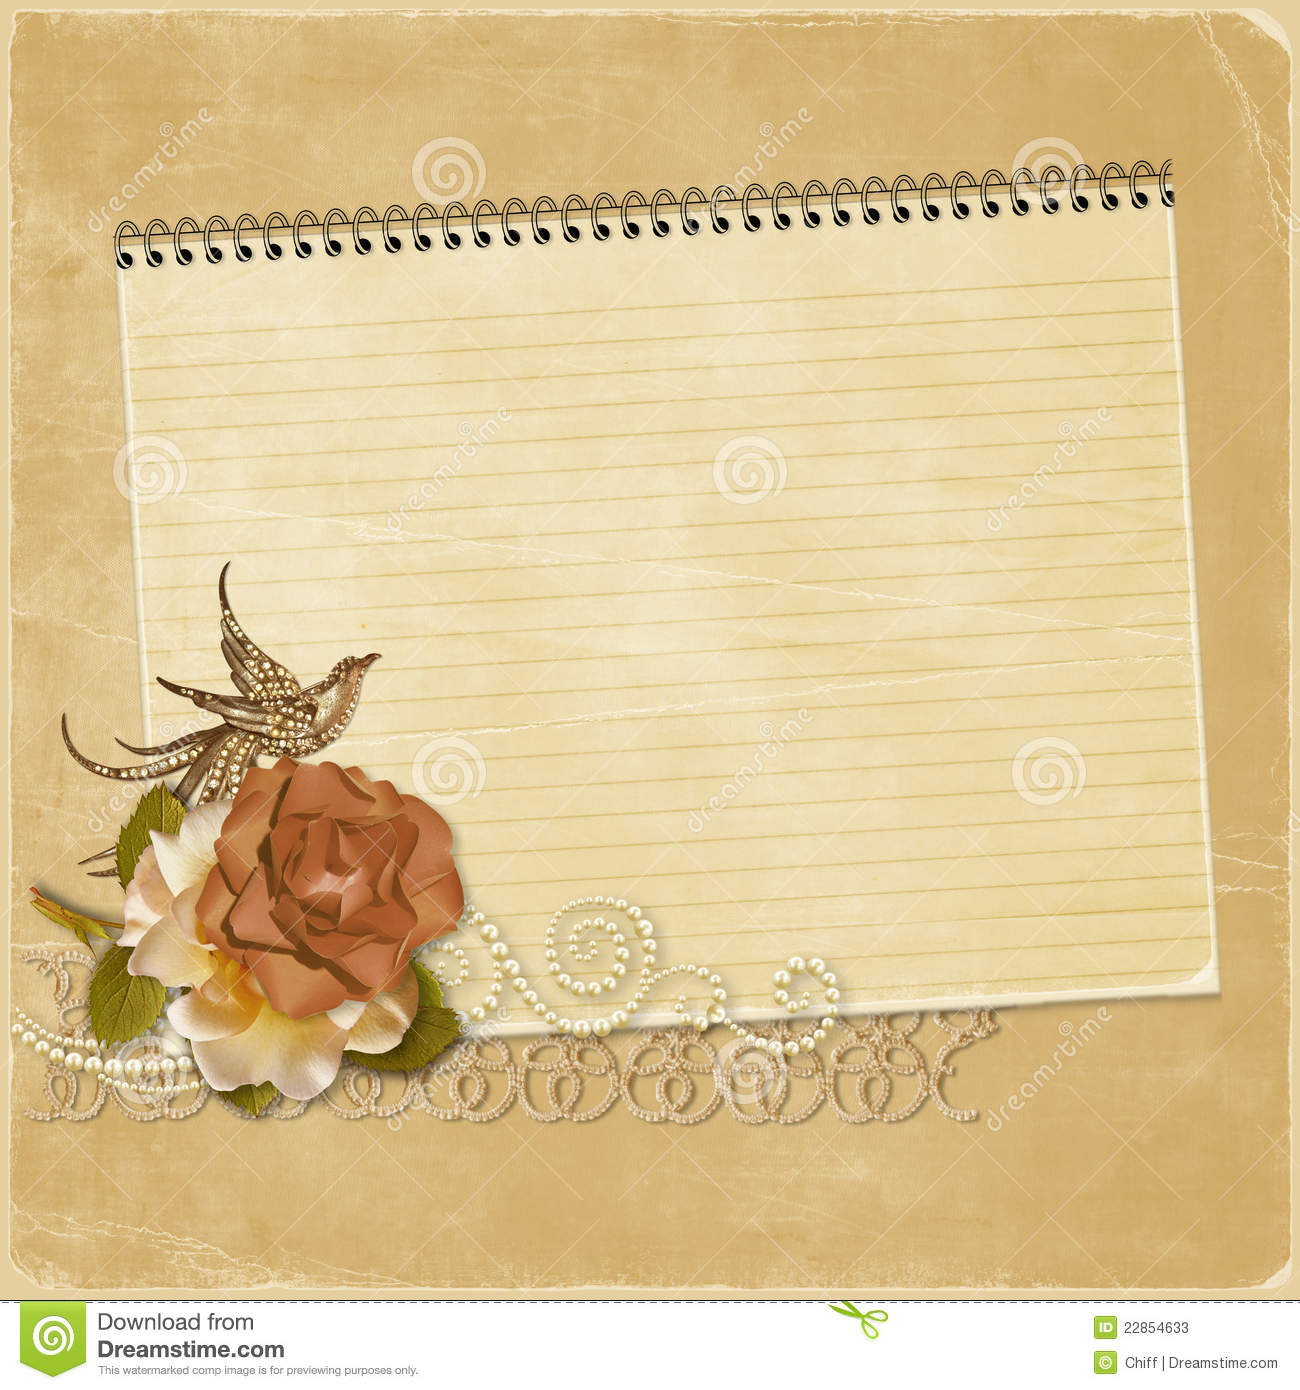 Vintage Background With A Notebook And A Rose With Stock ...